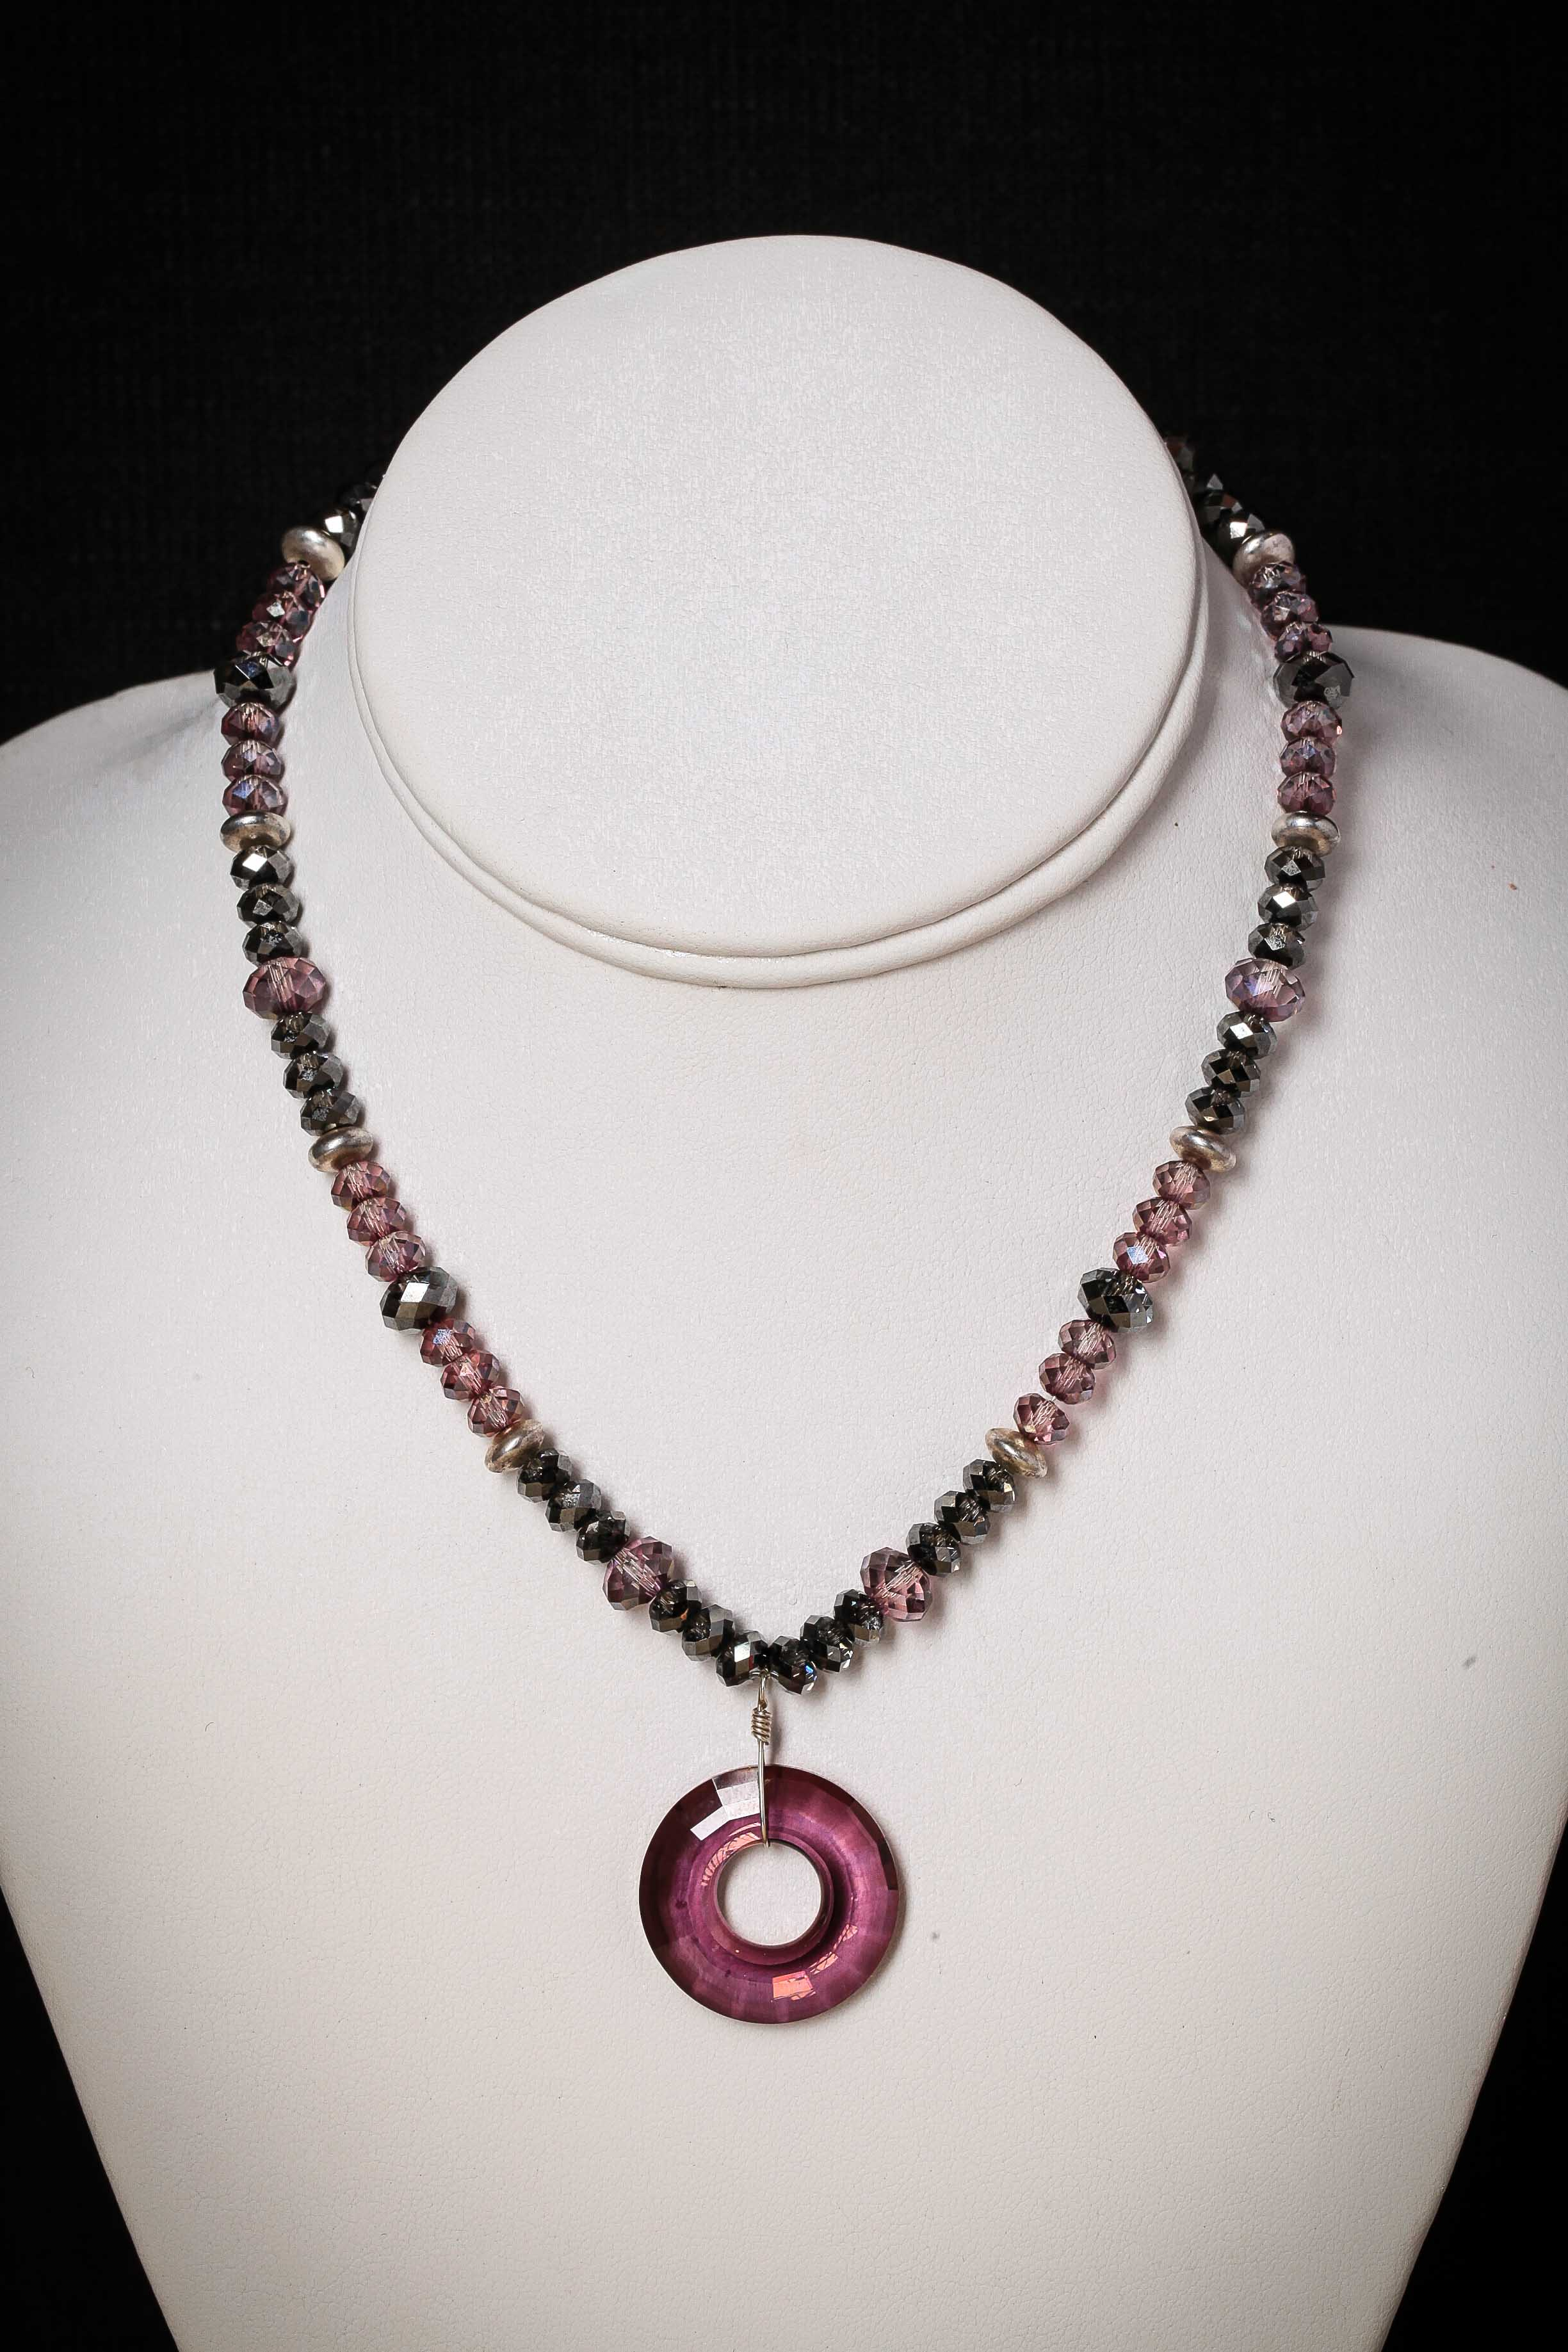 Swarovski Crystal Necklace Design by Judith Glassman